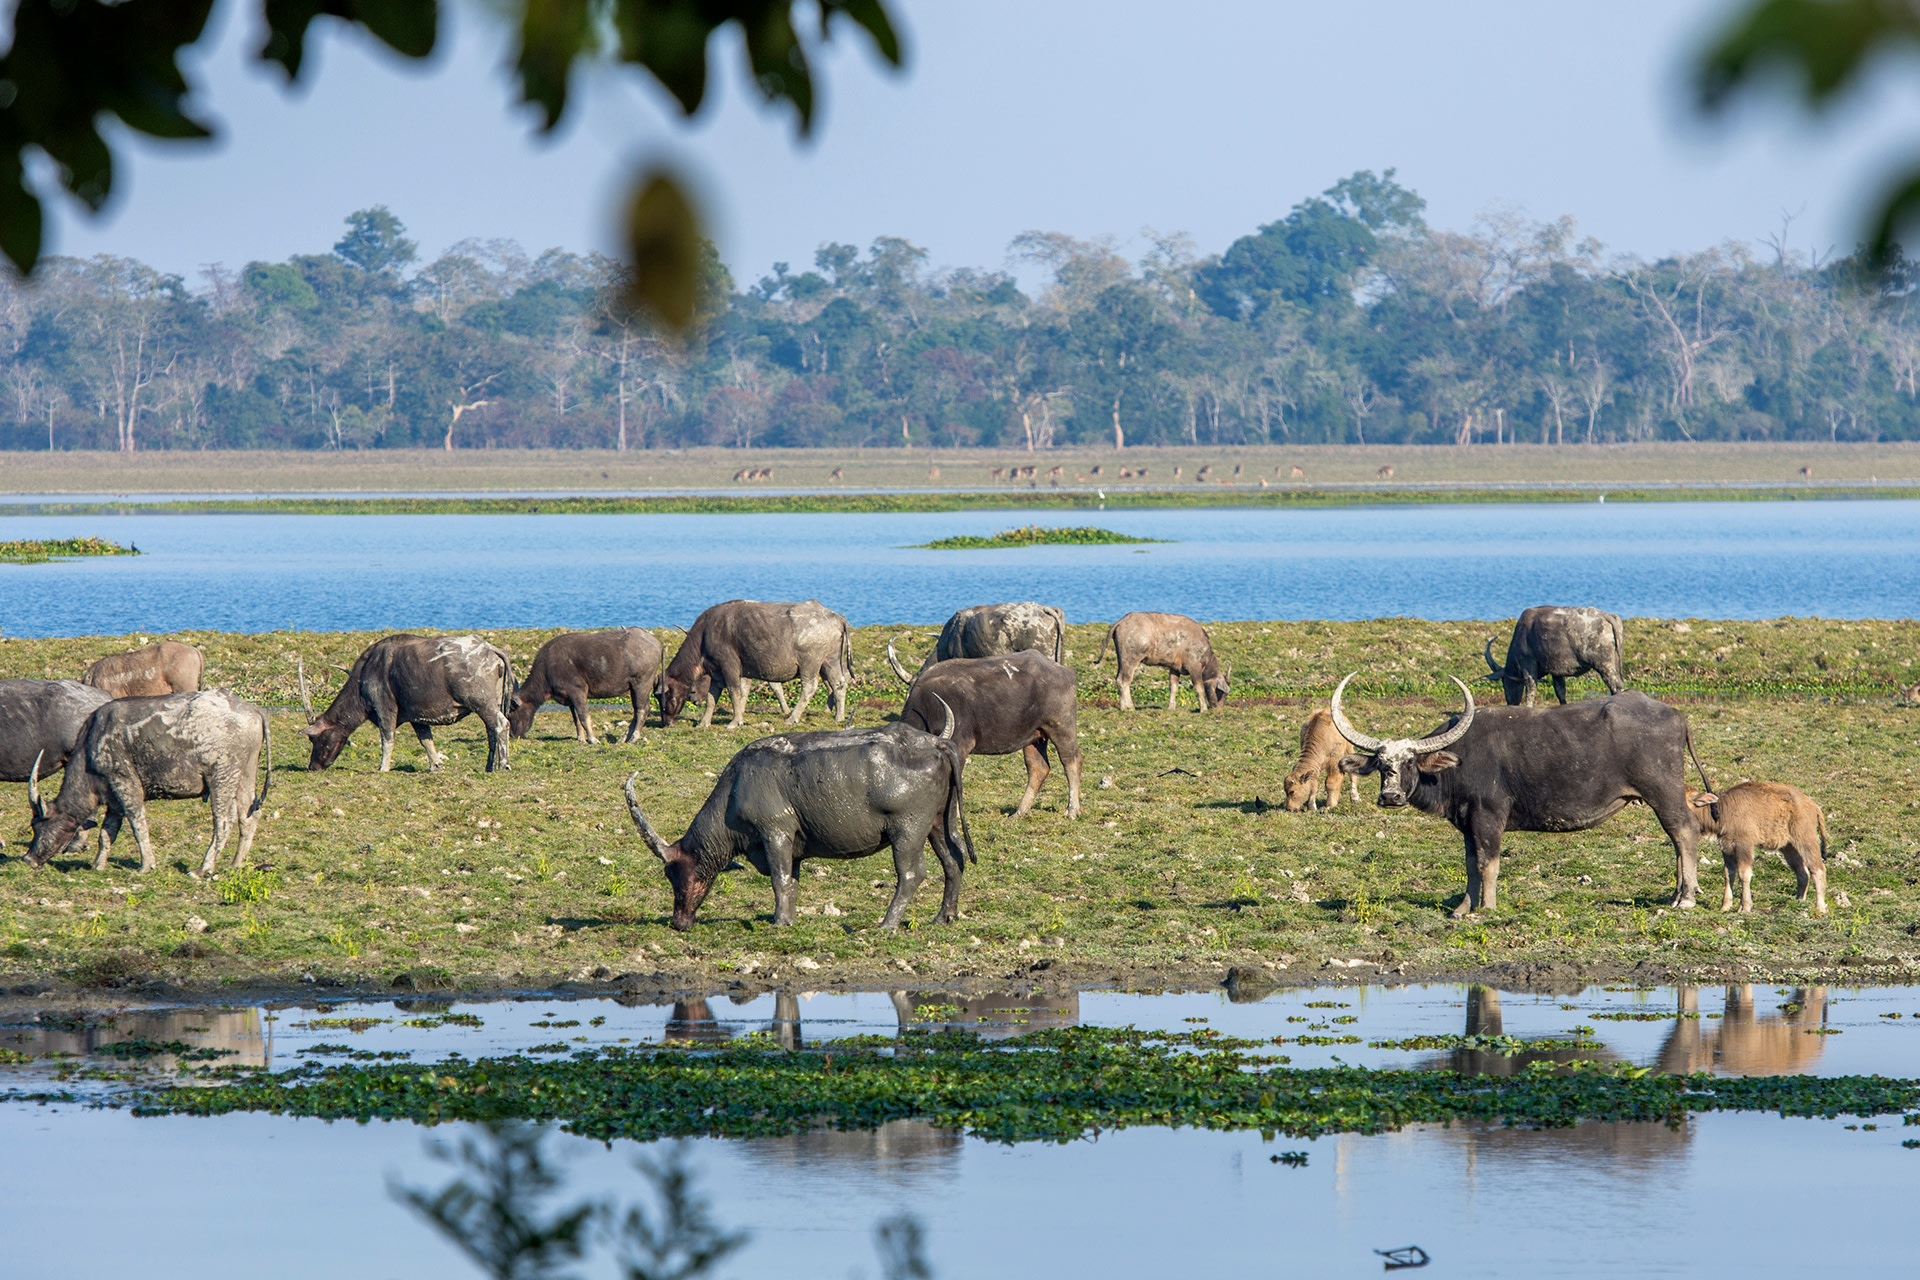 In India, wild water buffalo are mostly found in the low-lying alluvial grassland habitats of Assam. A small fragmented population exists in Chhattisgarh, Central India. Photo: Udayan Borthakur